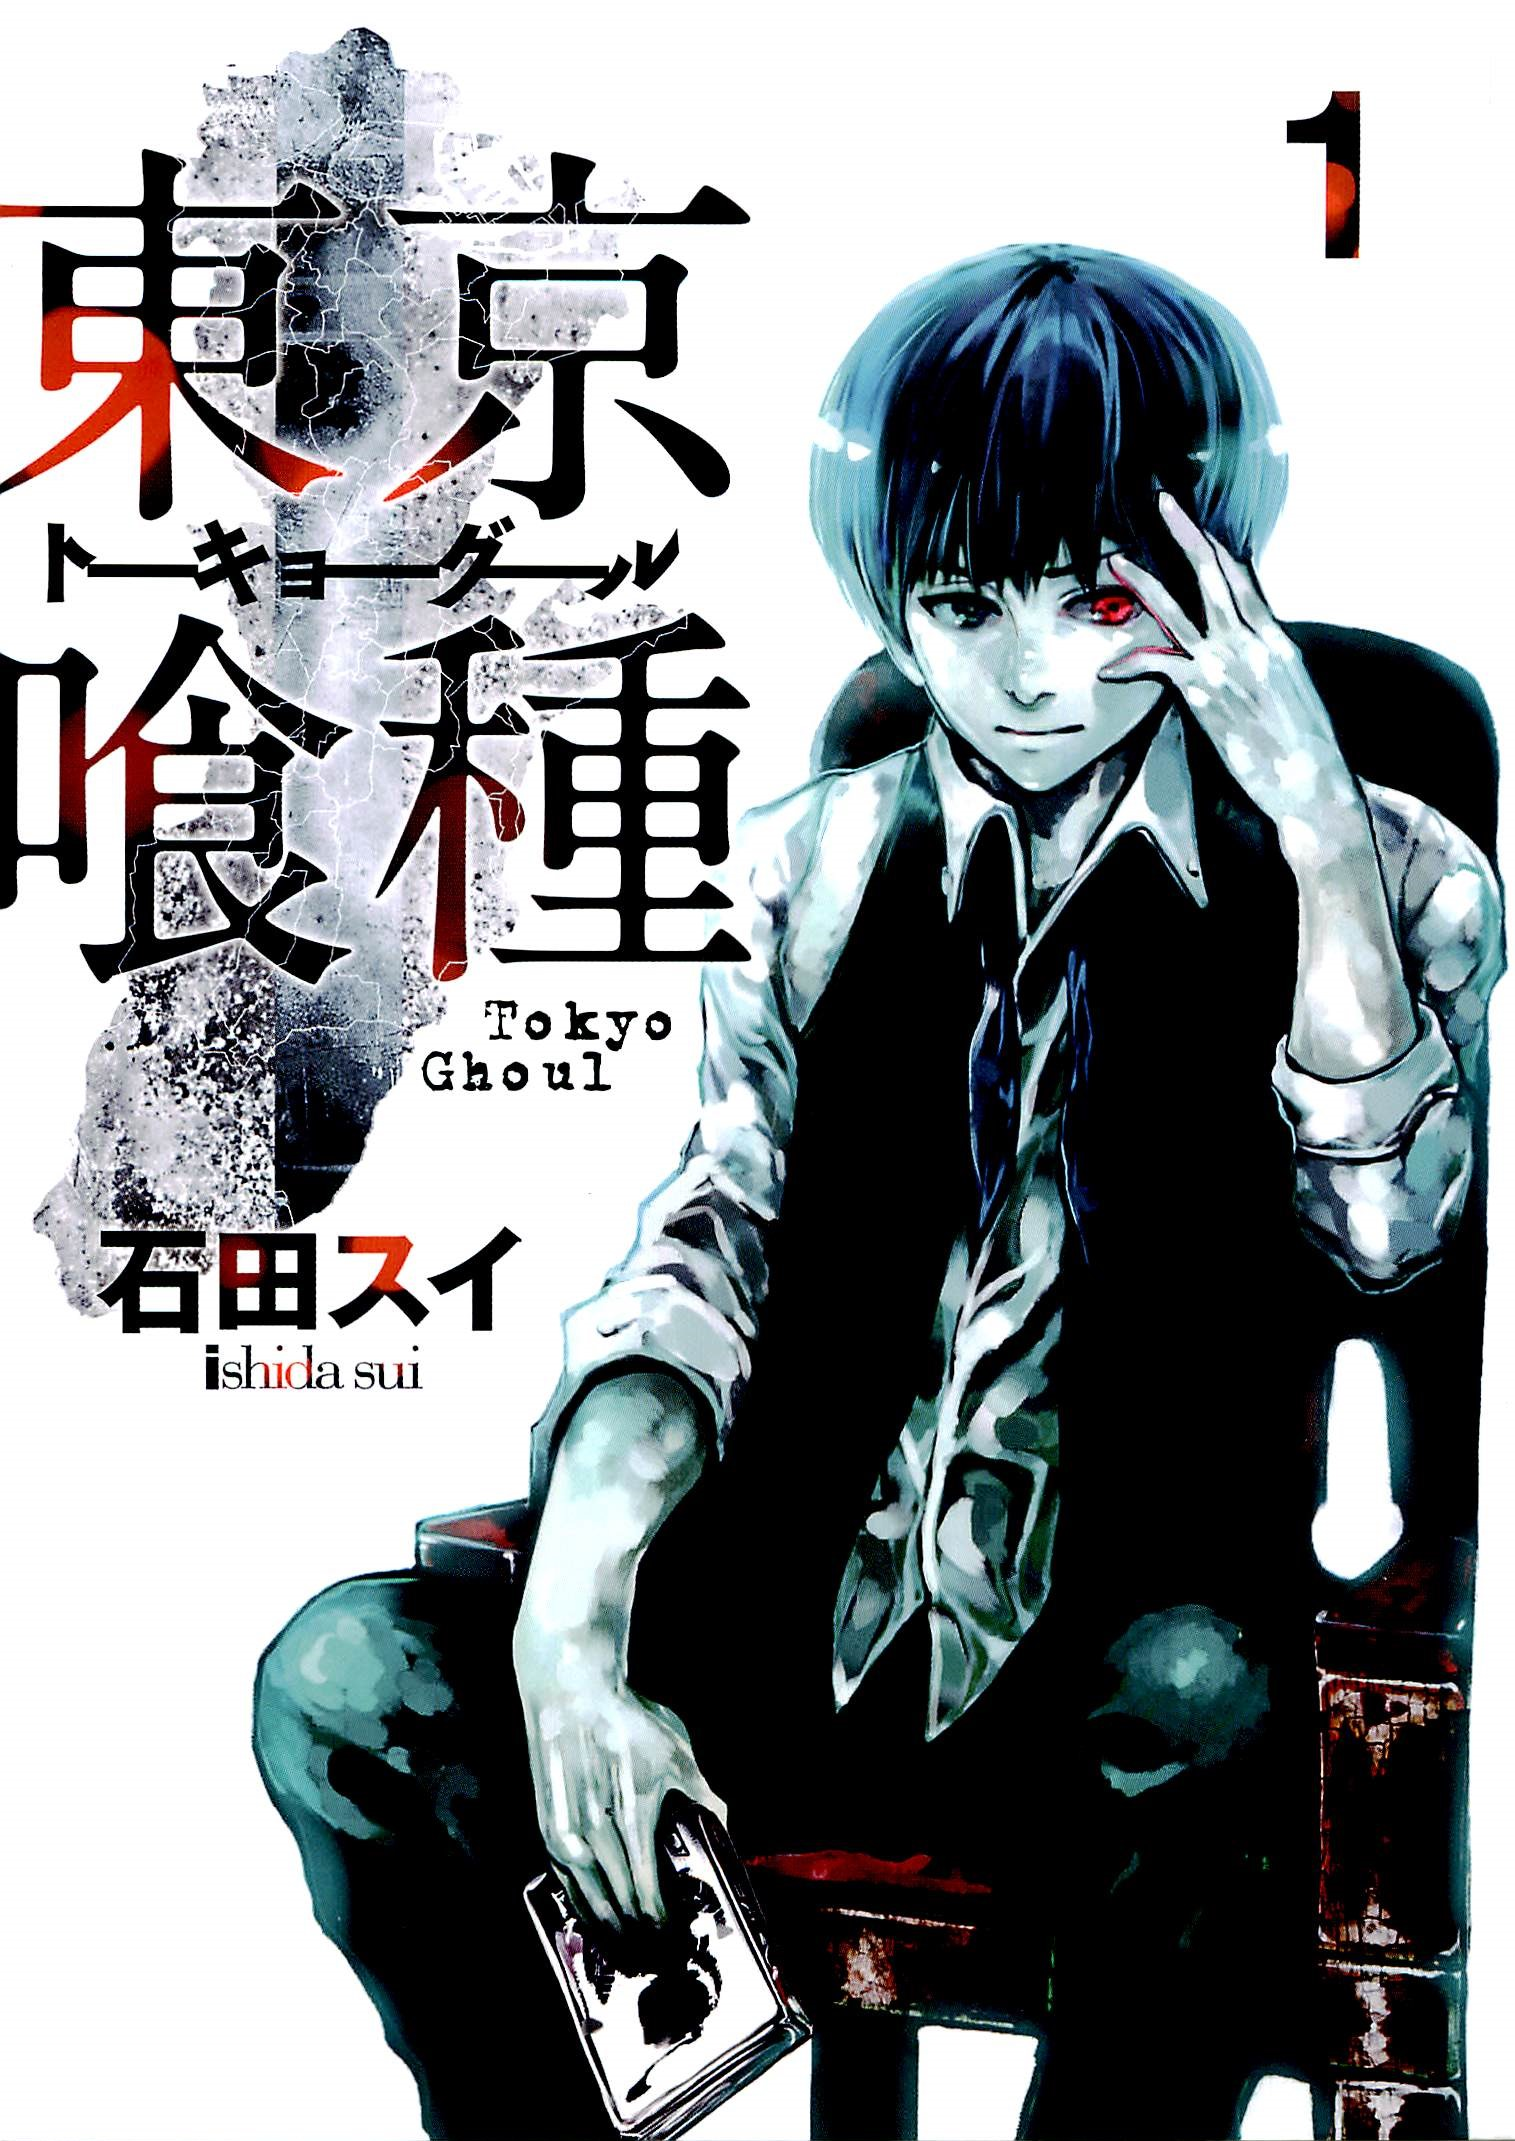 http://vignette2.wikia.nocookie.net/tokyoghoul/images/6/6a/Volume_01.jpg/revision/latest?cb=20161203075330